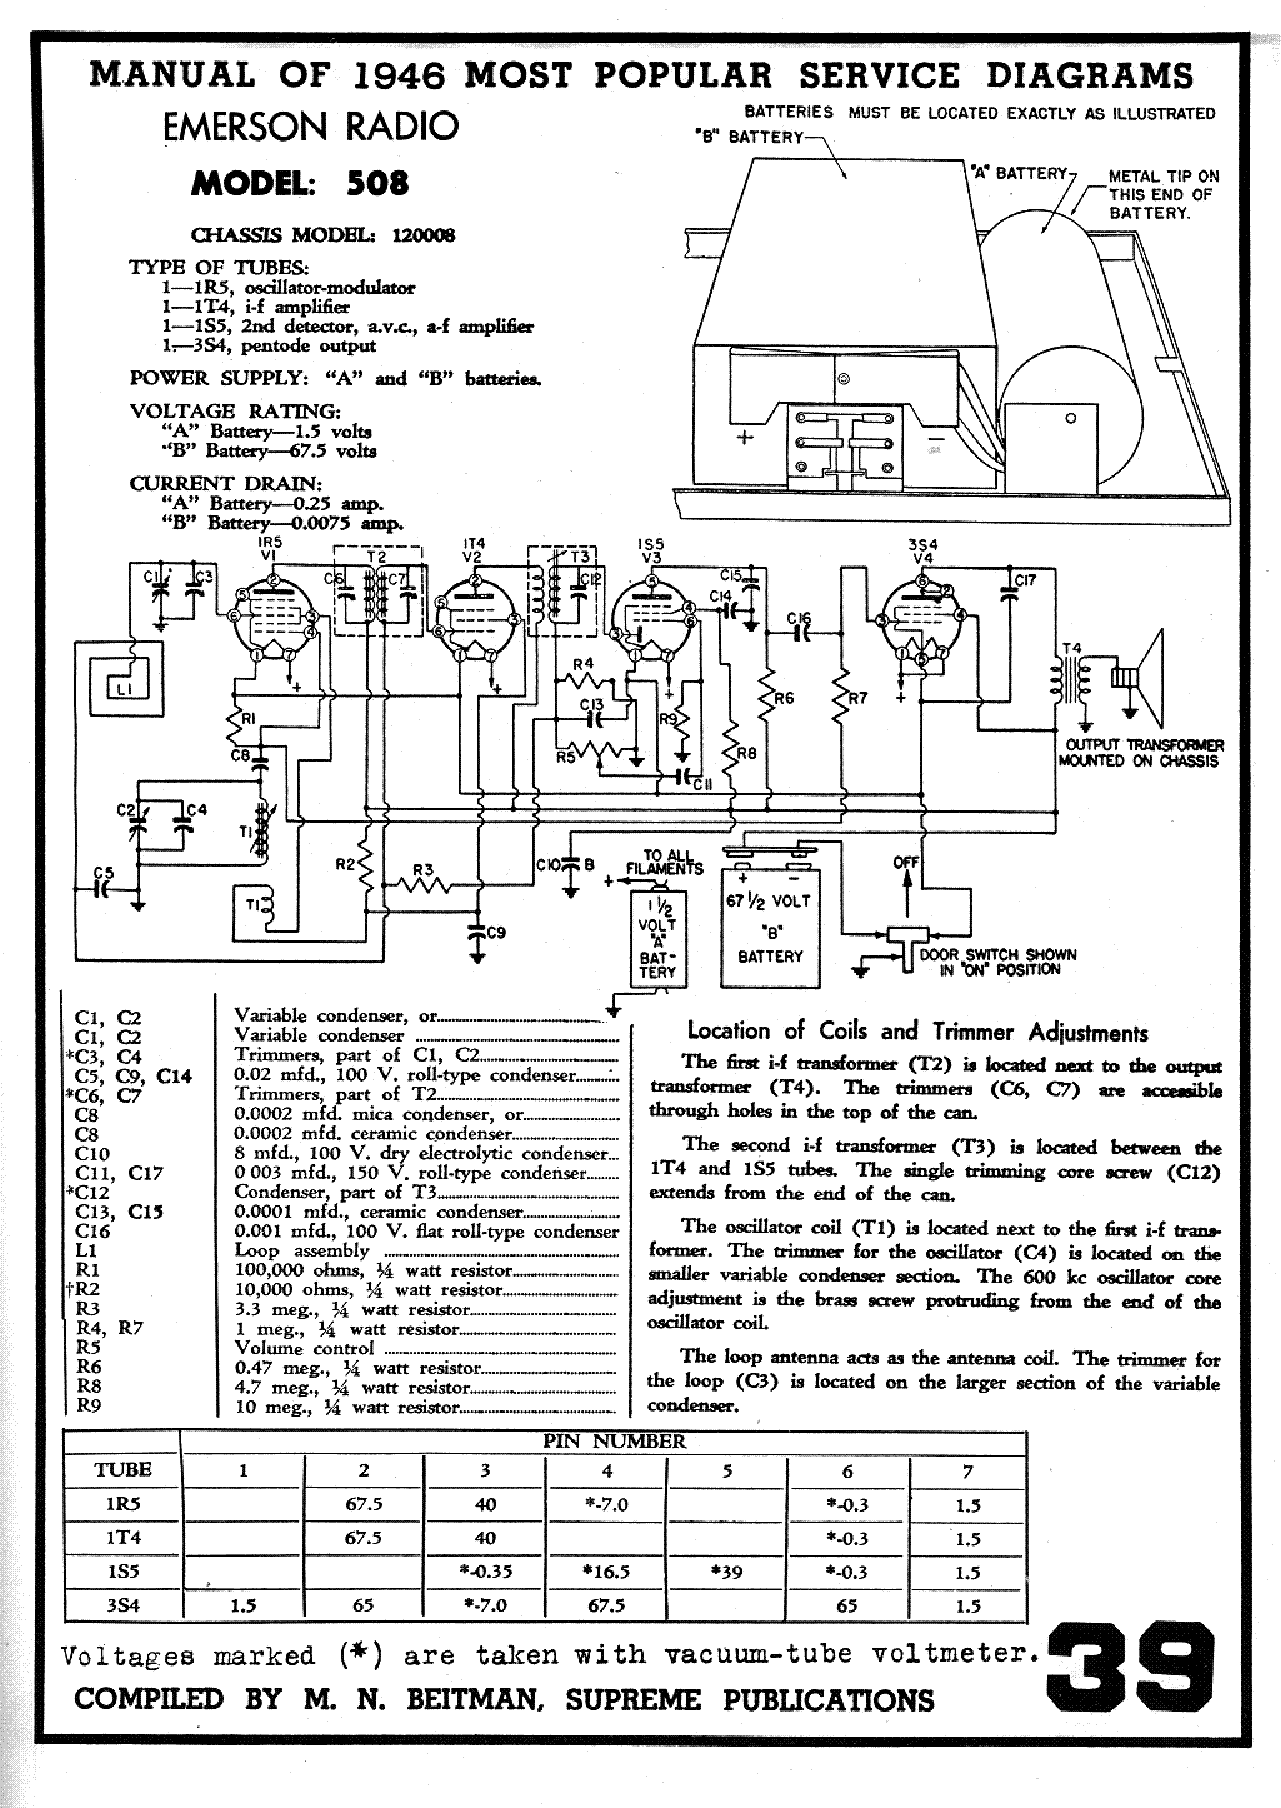 EMERSON MODEL-508 SCH service manual (1st page)